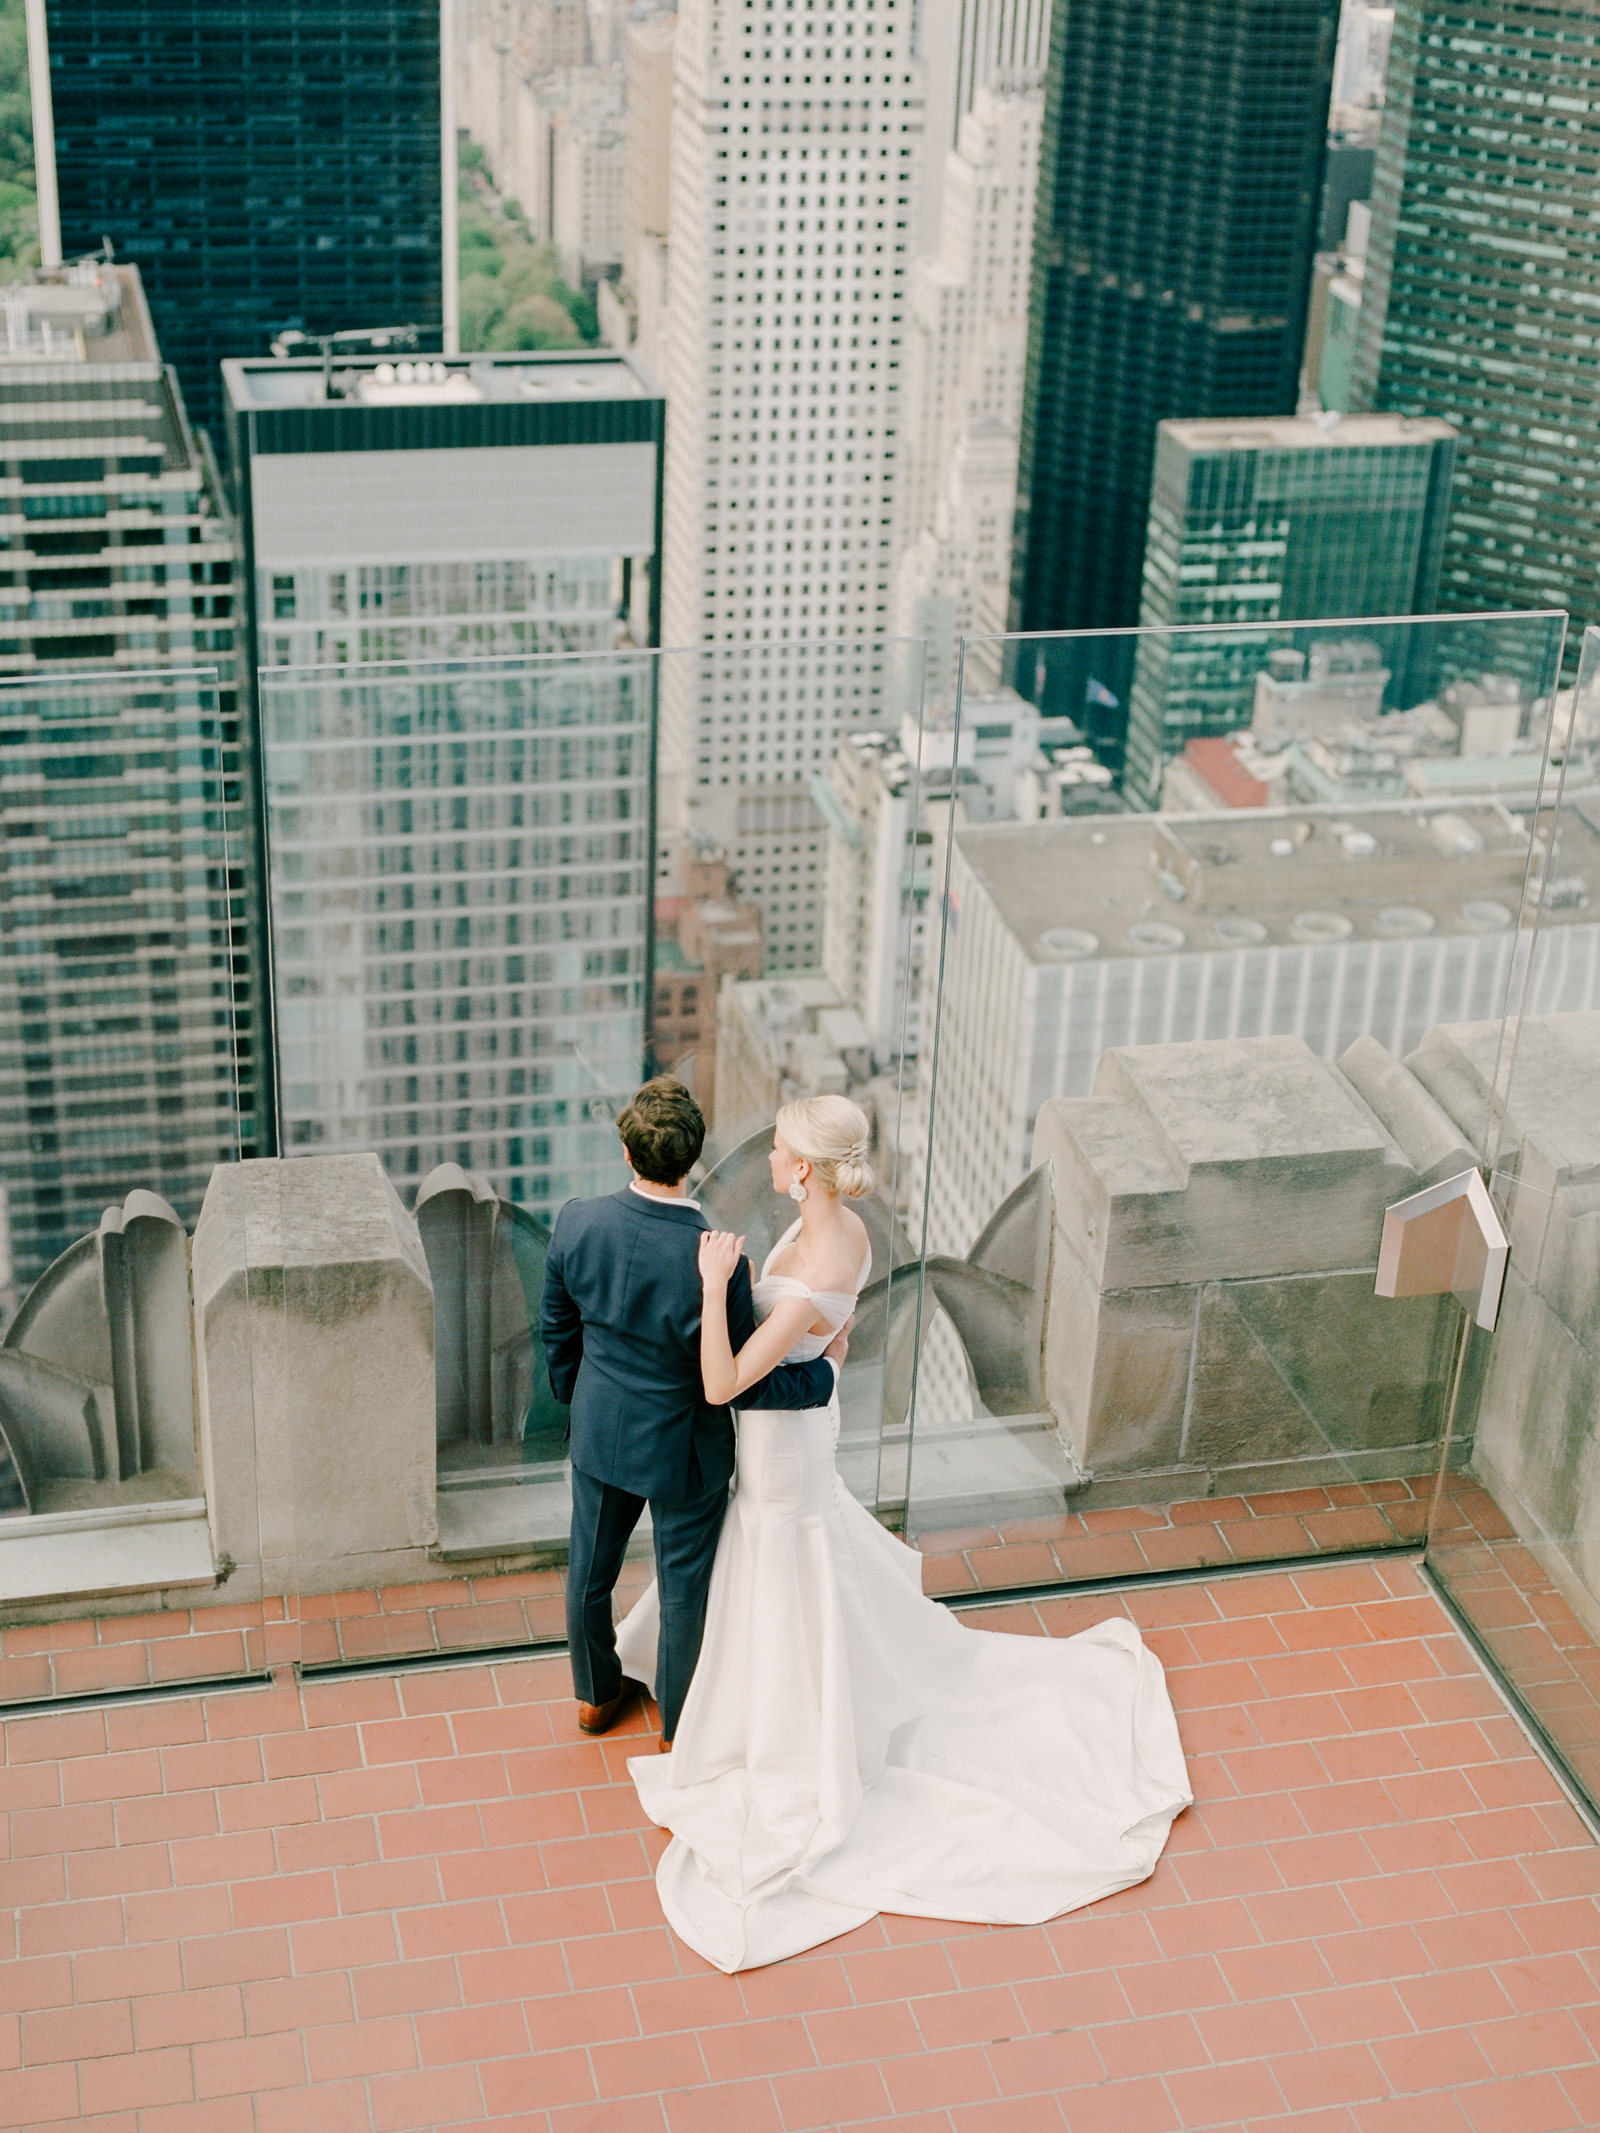 Intimate-NYC_wedding_ by Tanya Isaeva-163.jpg